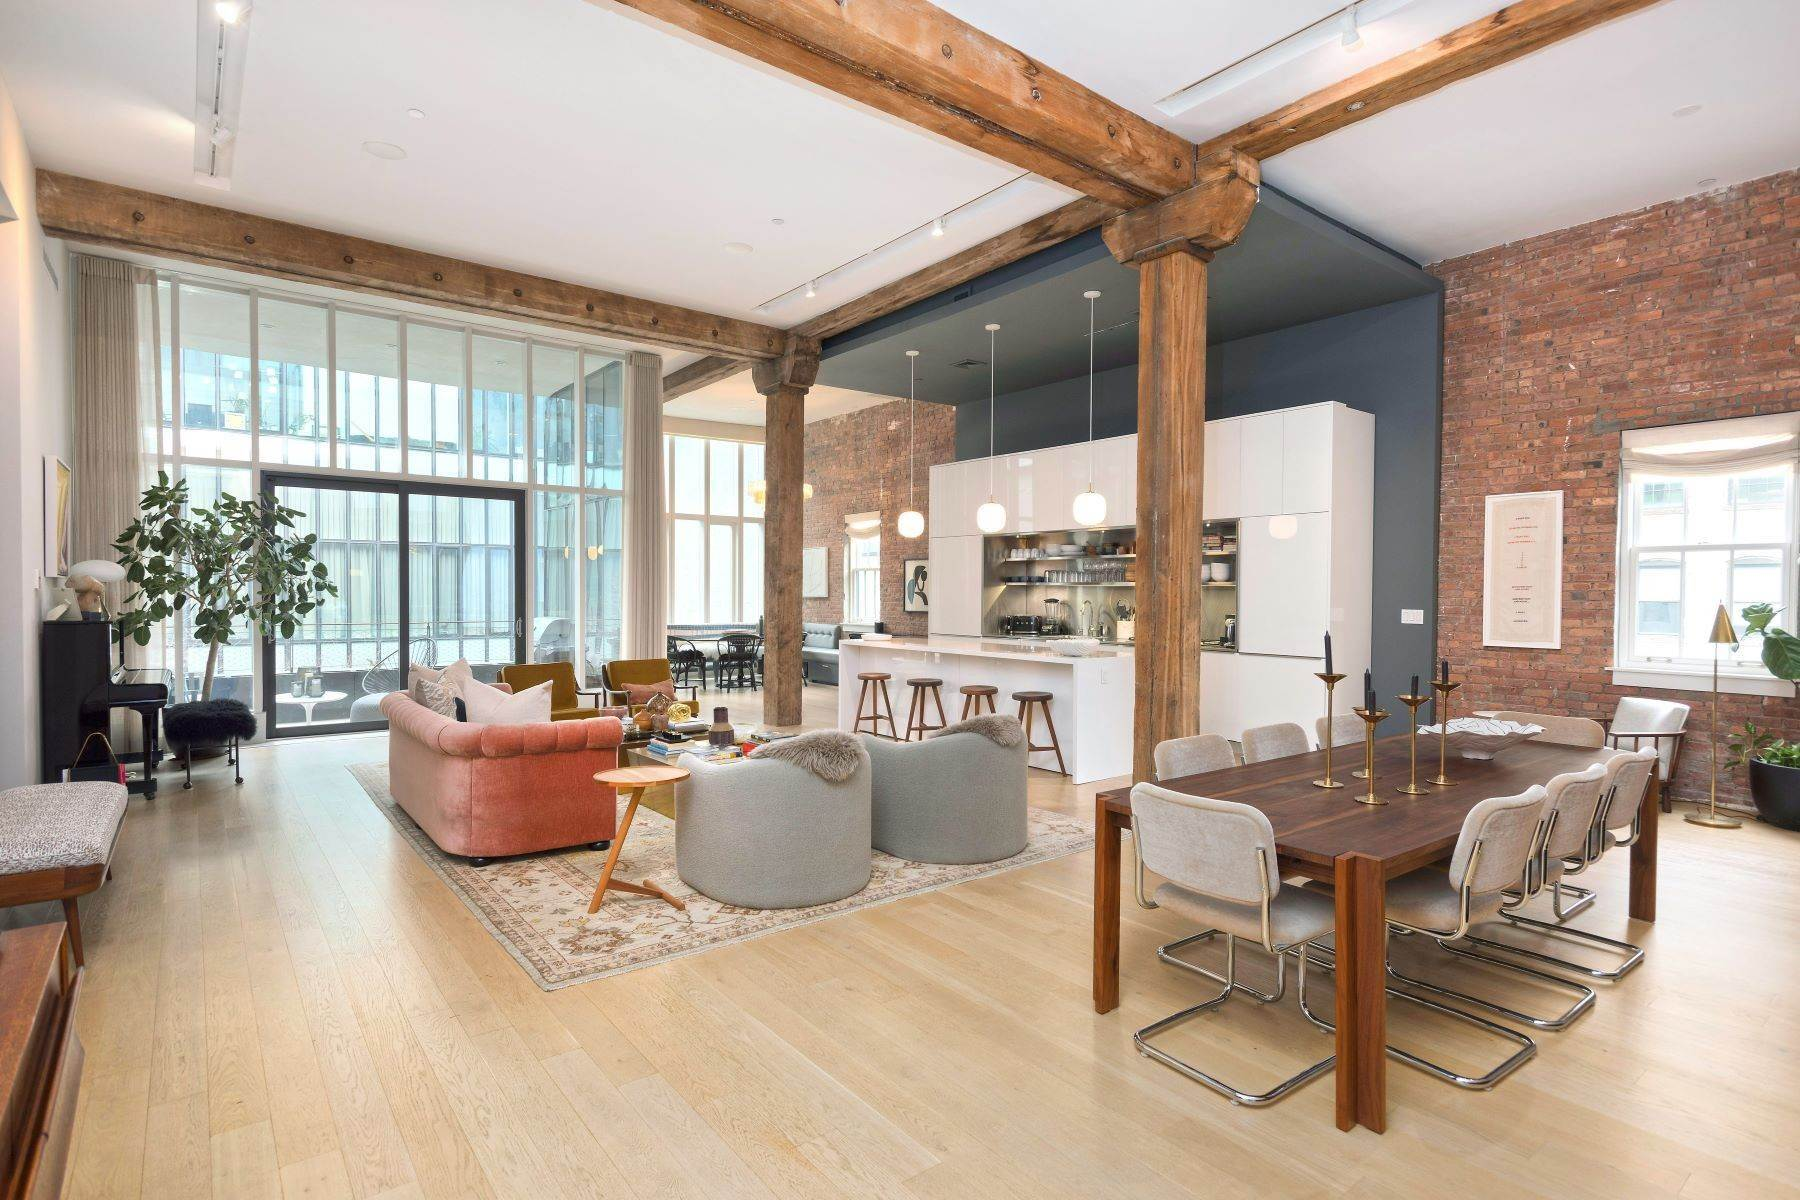 Condominiums lúc Unique Dumbo Loft Masterpiece 185 Plymouth Street, Apt 3S Brooklyn, New York 11201 Hoa Kỳ